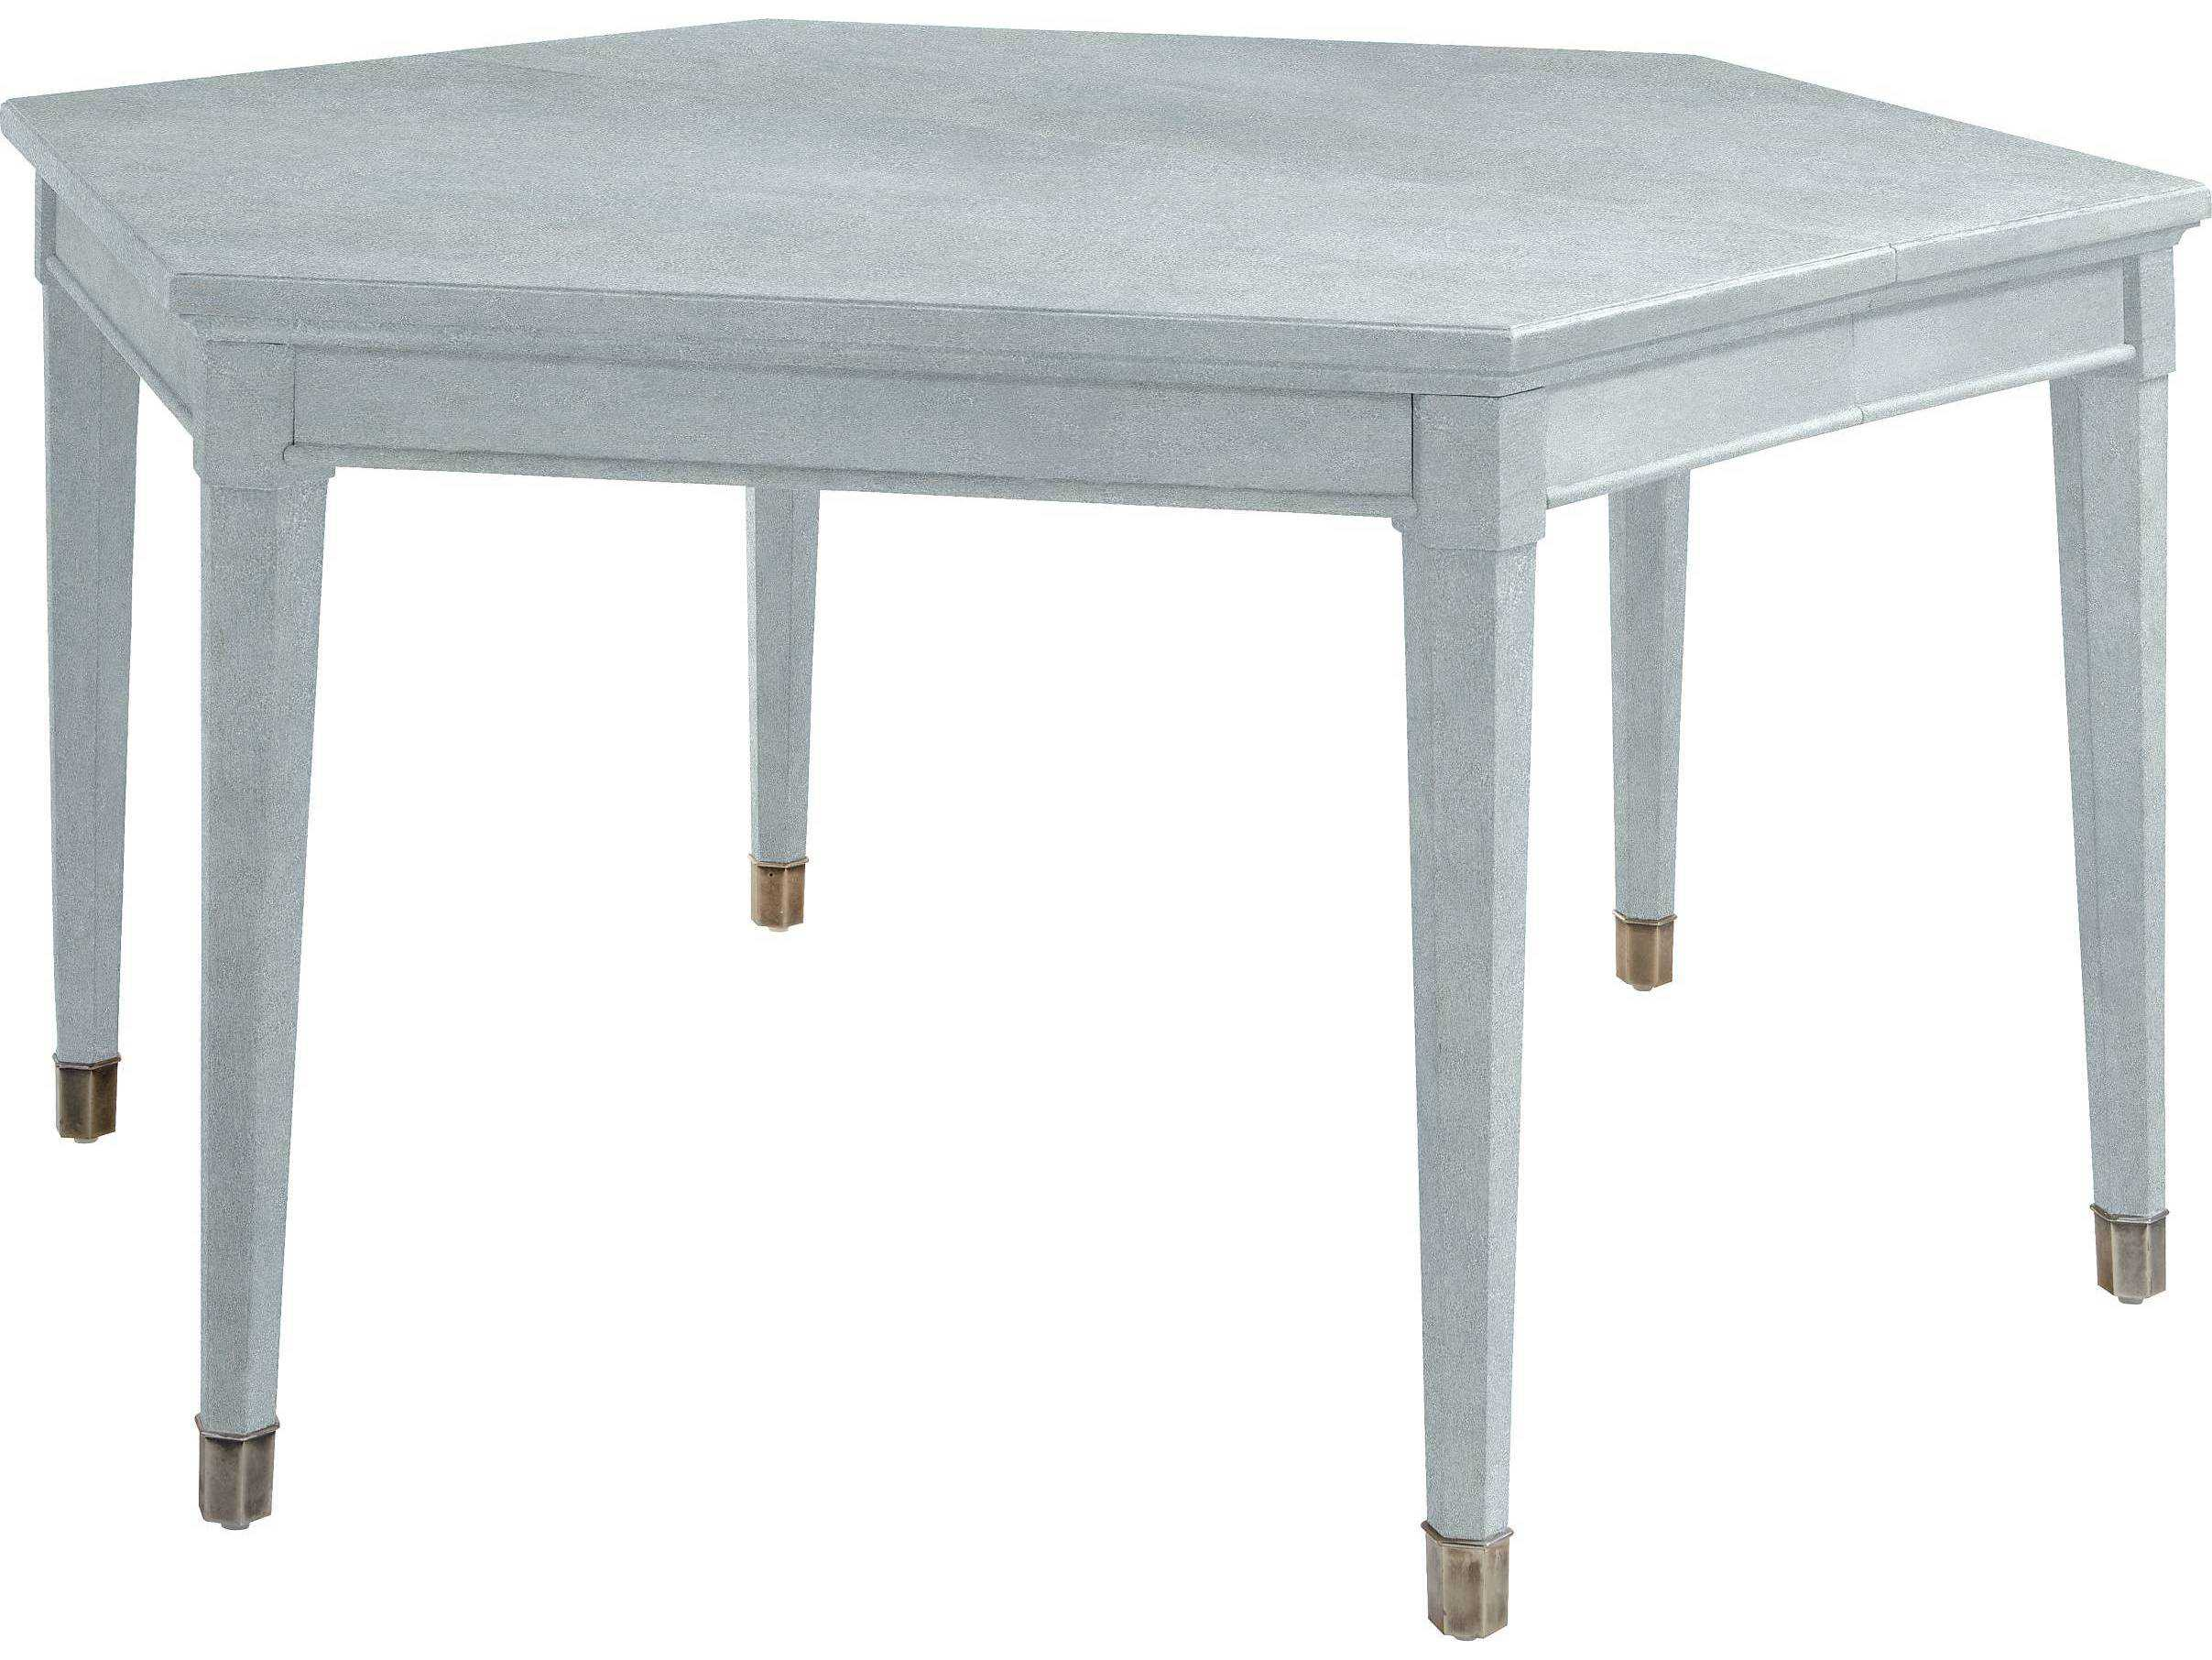 Stanley Furniture Coastal Living Resort Sea Salt 66'' X 57